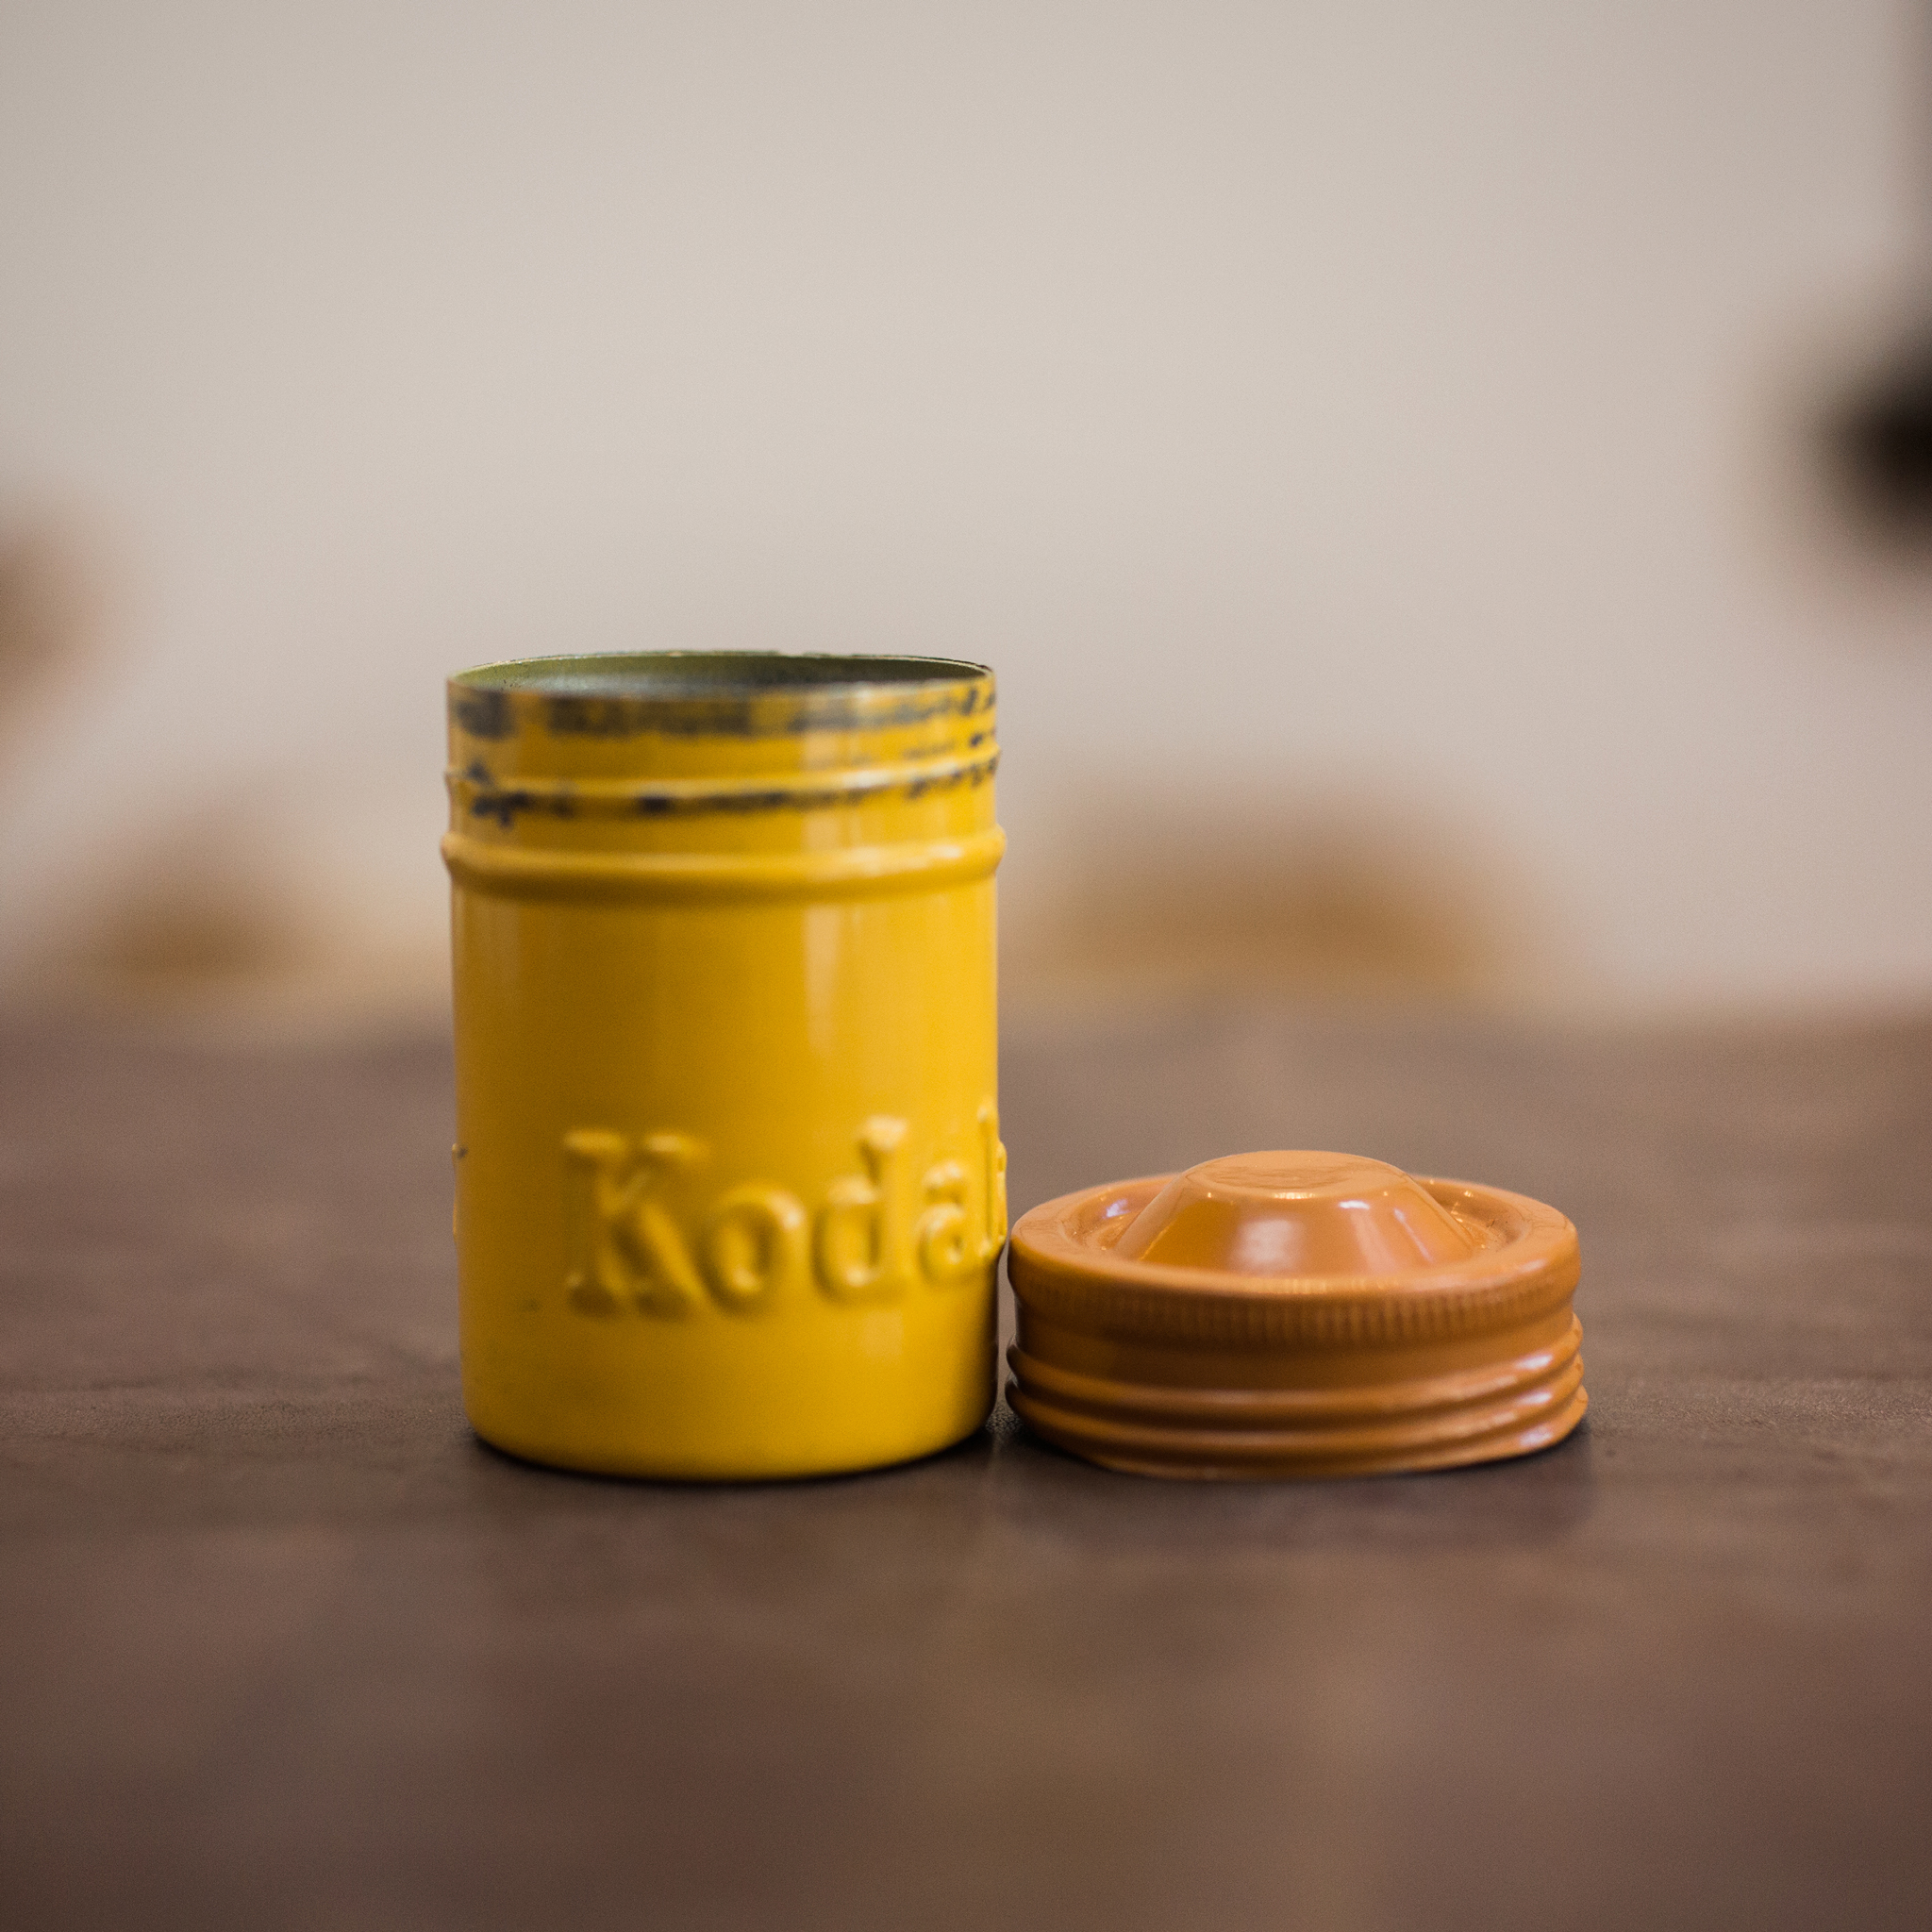 Antique film canisters : Robot hindi movie songs download mp3